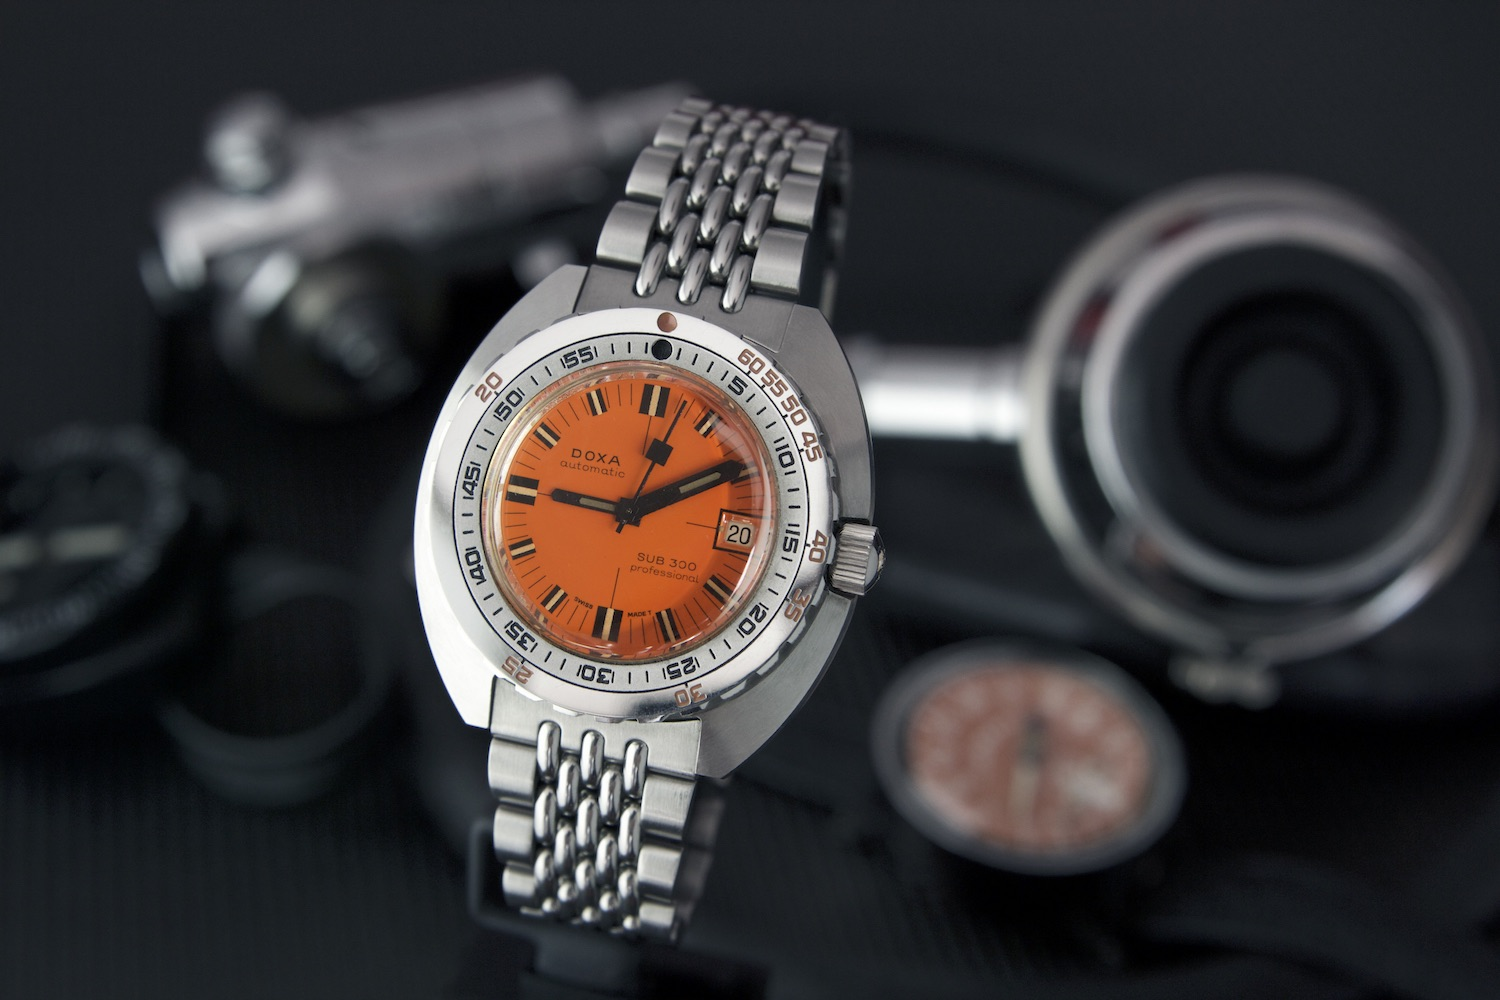 Doxa SUB 300T orange dial is a dive watch